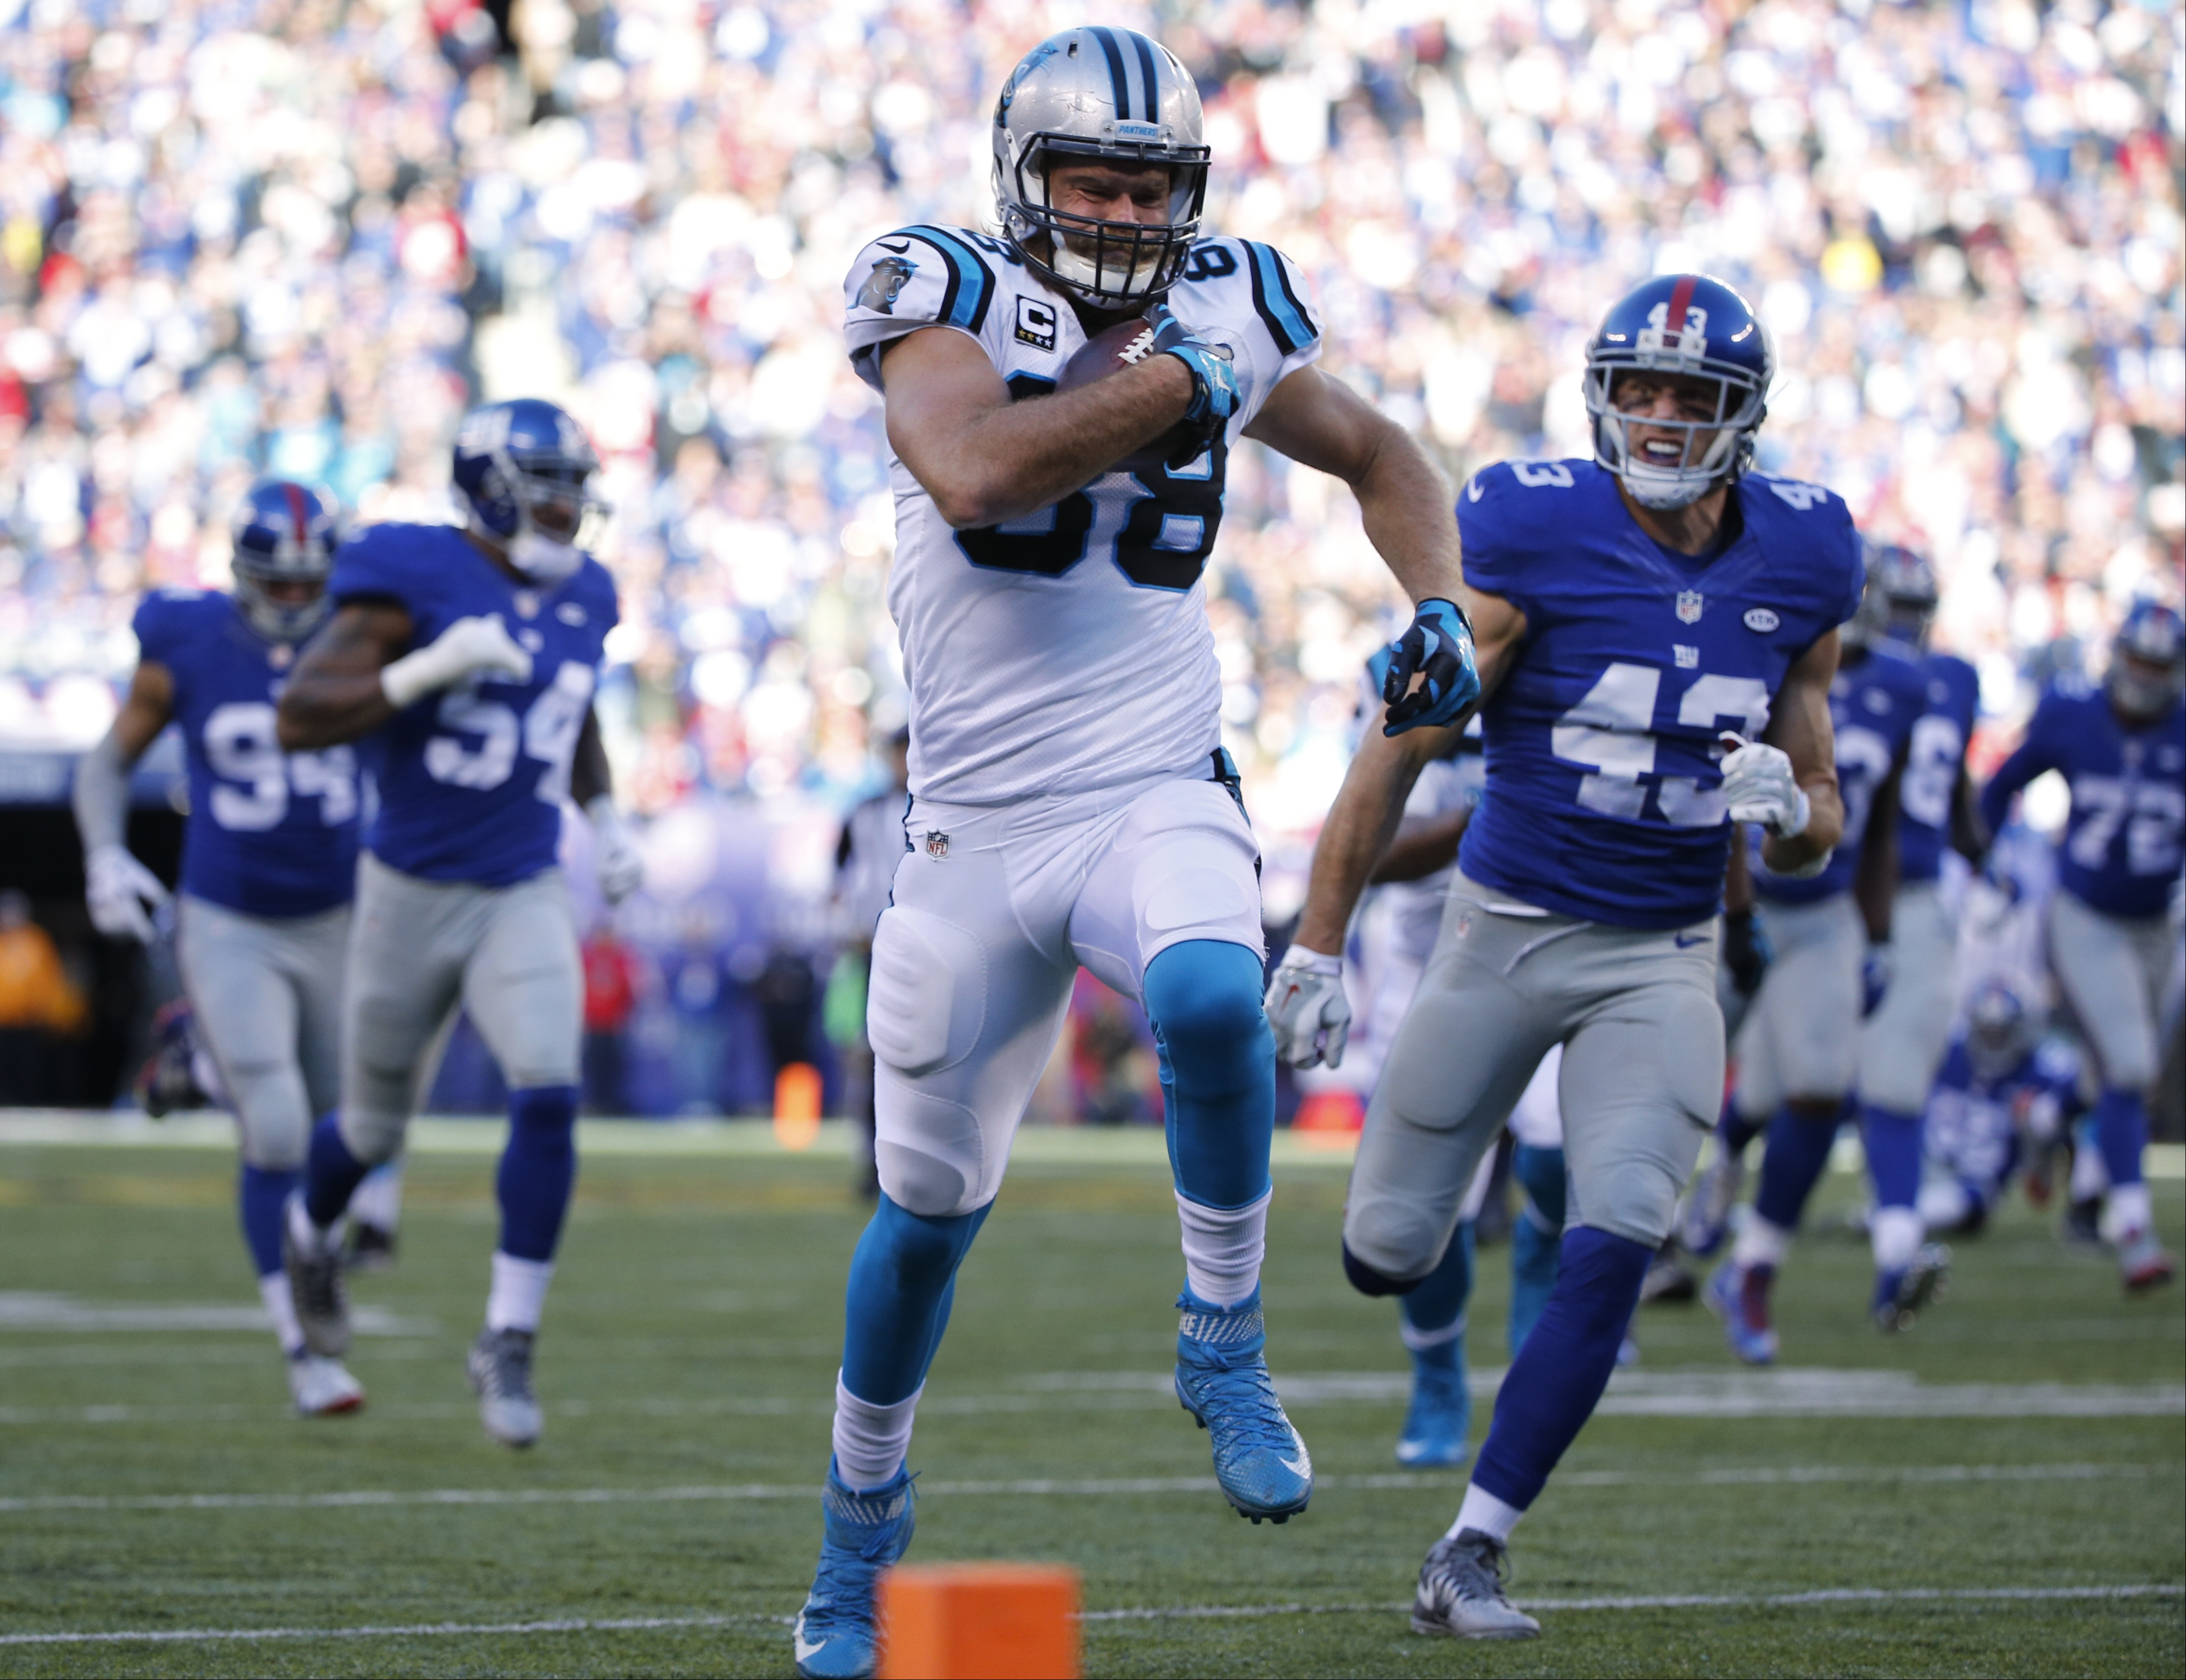 Carolina Panthers' Greg Olsen (88) runs away from New York Giants' Craig Dahl (43) for a touchdown during the first half of an NFL football game, Sunday, Dec. 20, 2015, in East Rutherford, N.J. (AP Photo/Kathy Willens)